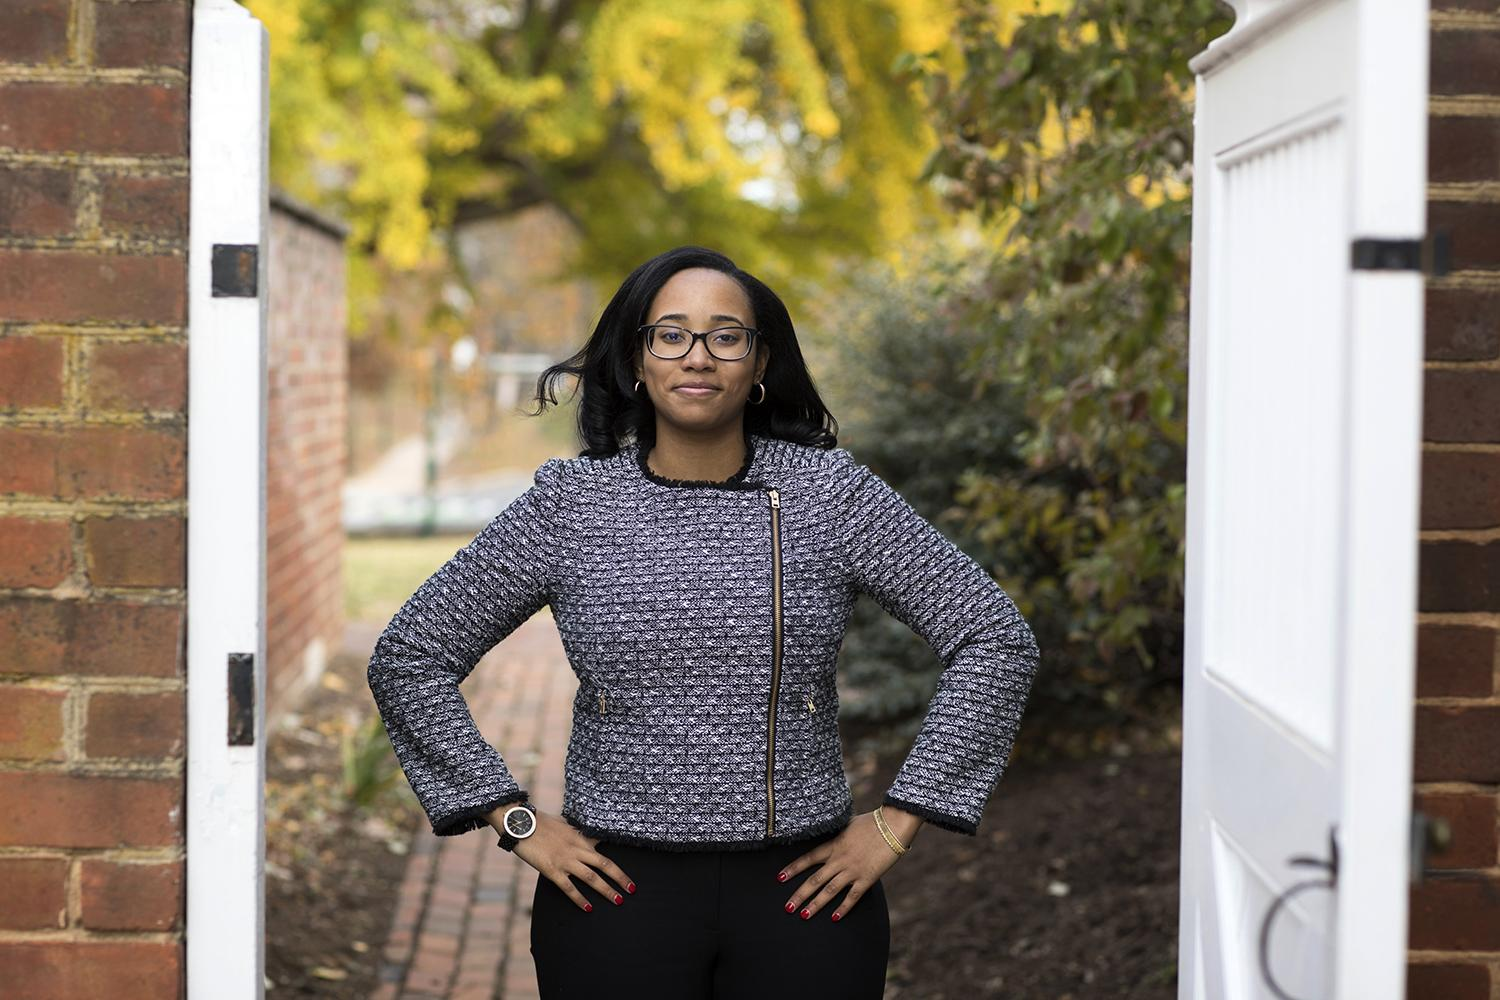 Fourth-year student Aryn Frazier will head to law school after completing two years of study as a Rhodes Scholar at the University of Oxford.